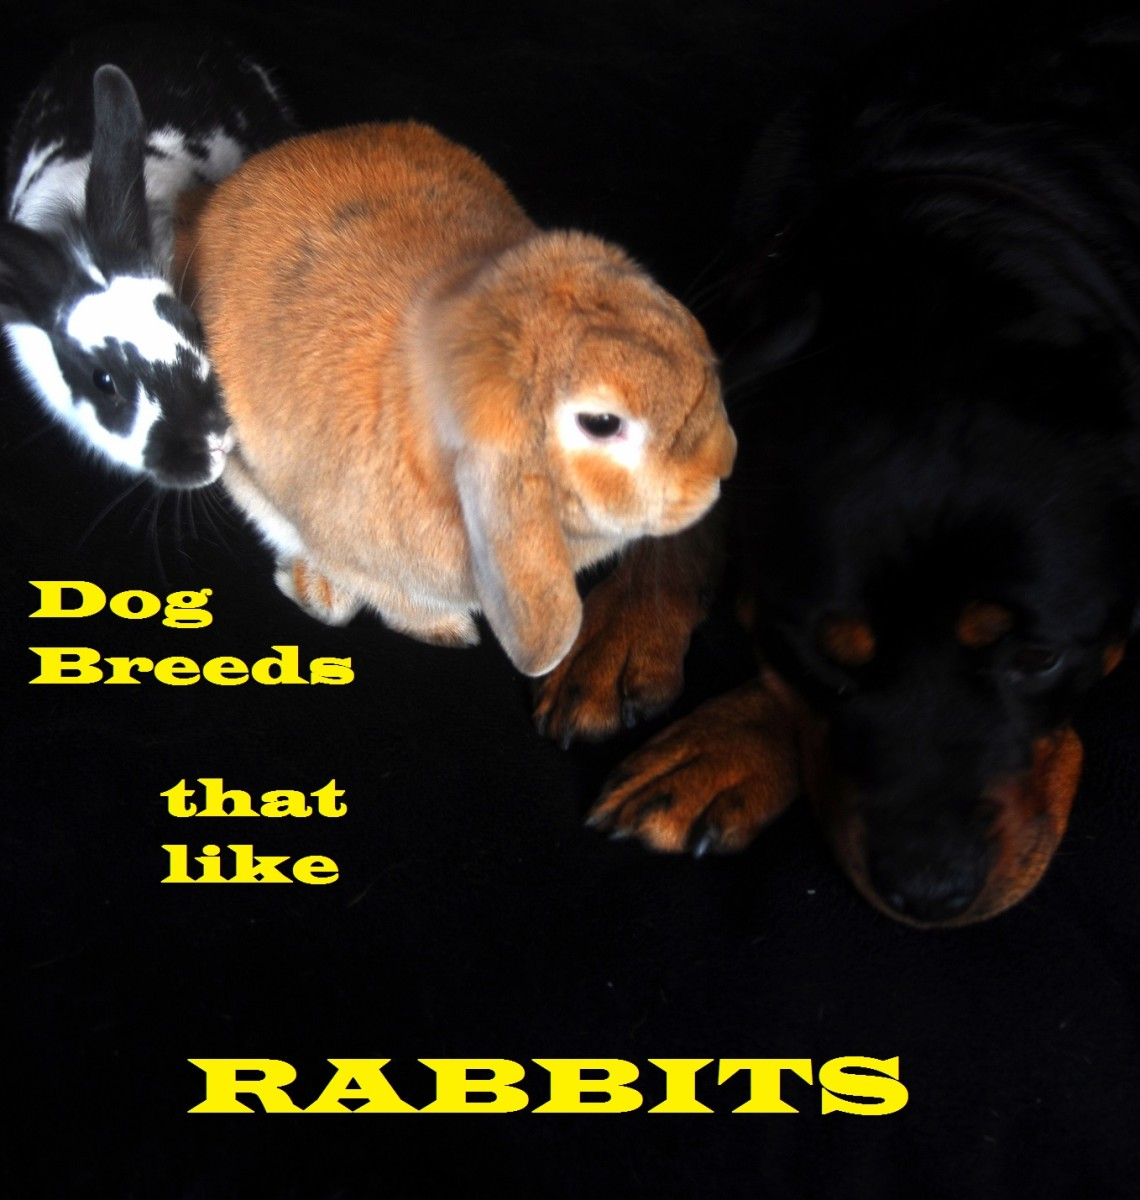 Dogs can get along with rabbits.